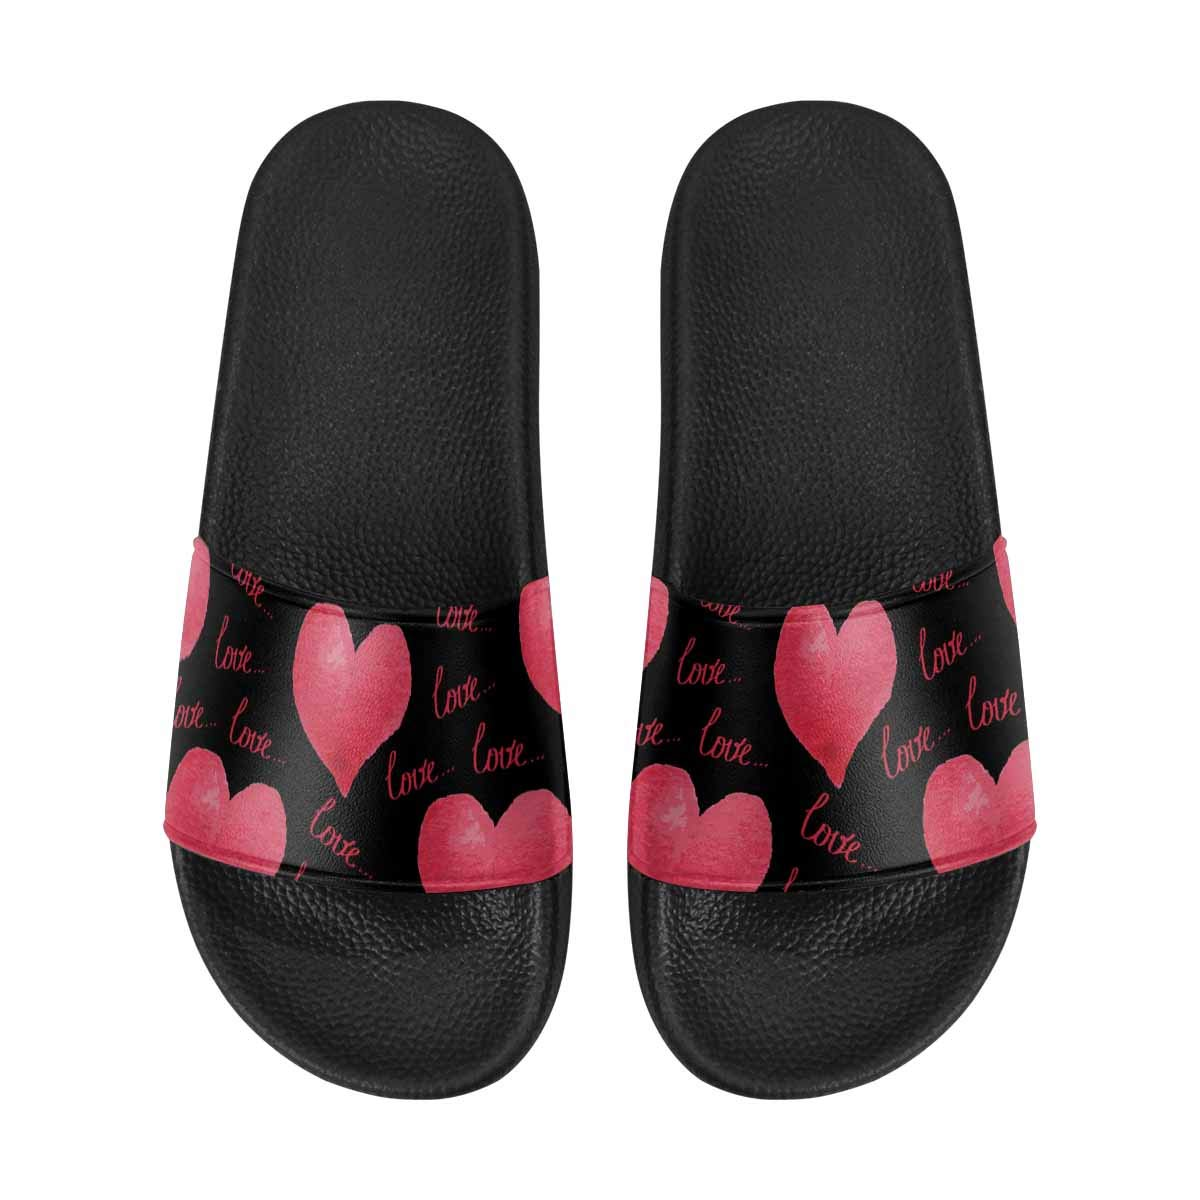 INTERESTPRINT Womens Casual Slippers Home Bathroom Slide Sandals US6~US12